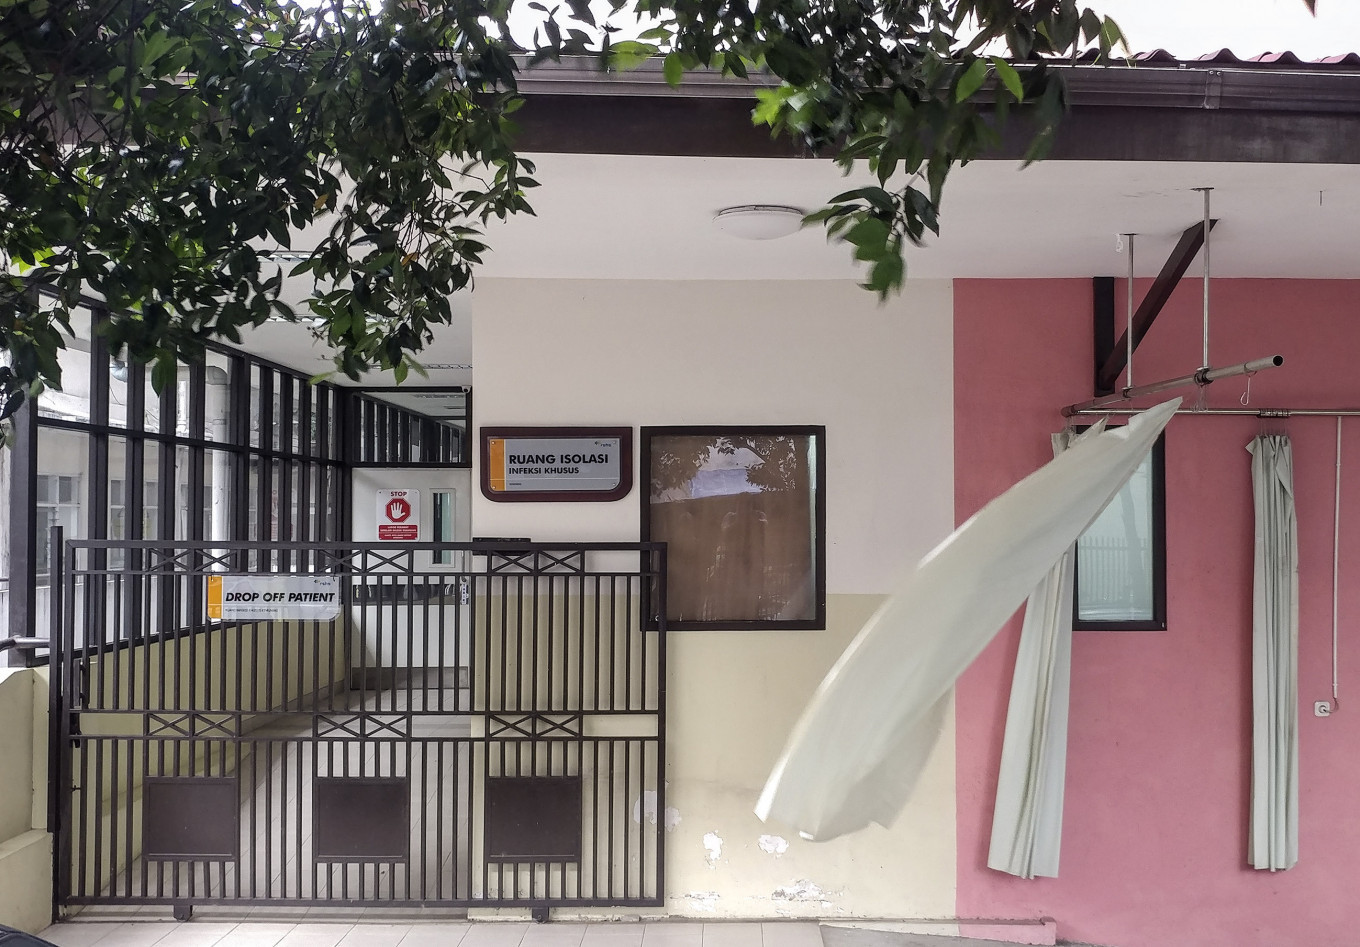 Hospitals not authorized to reveal lab results of COVID-19 patients: Bandung referral center